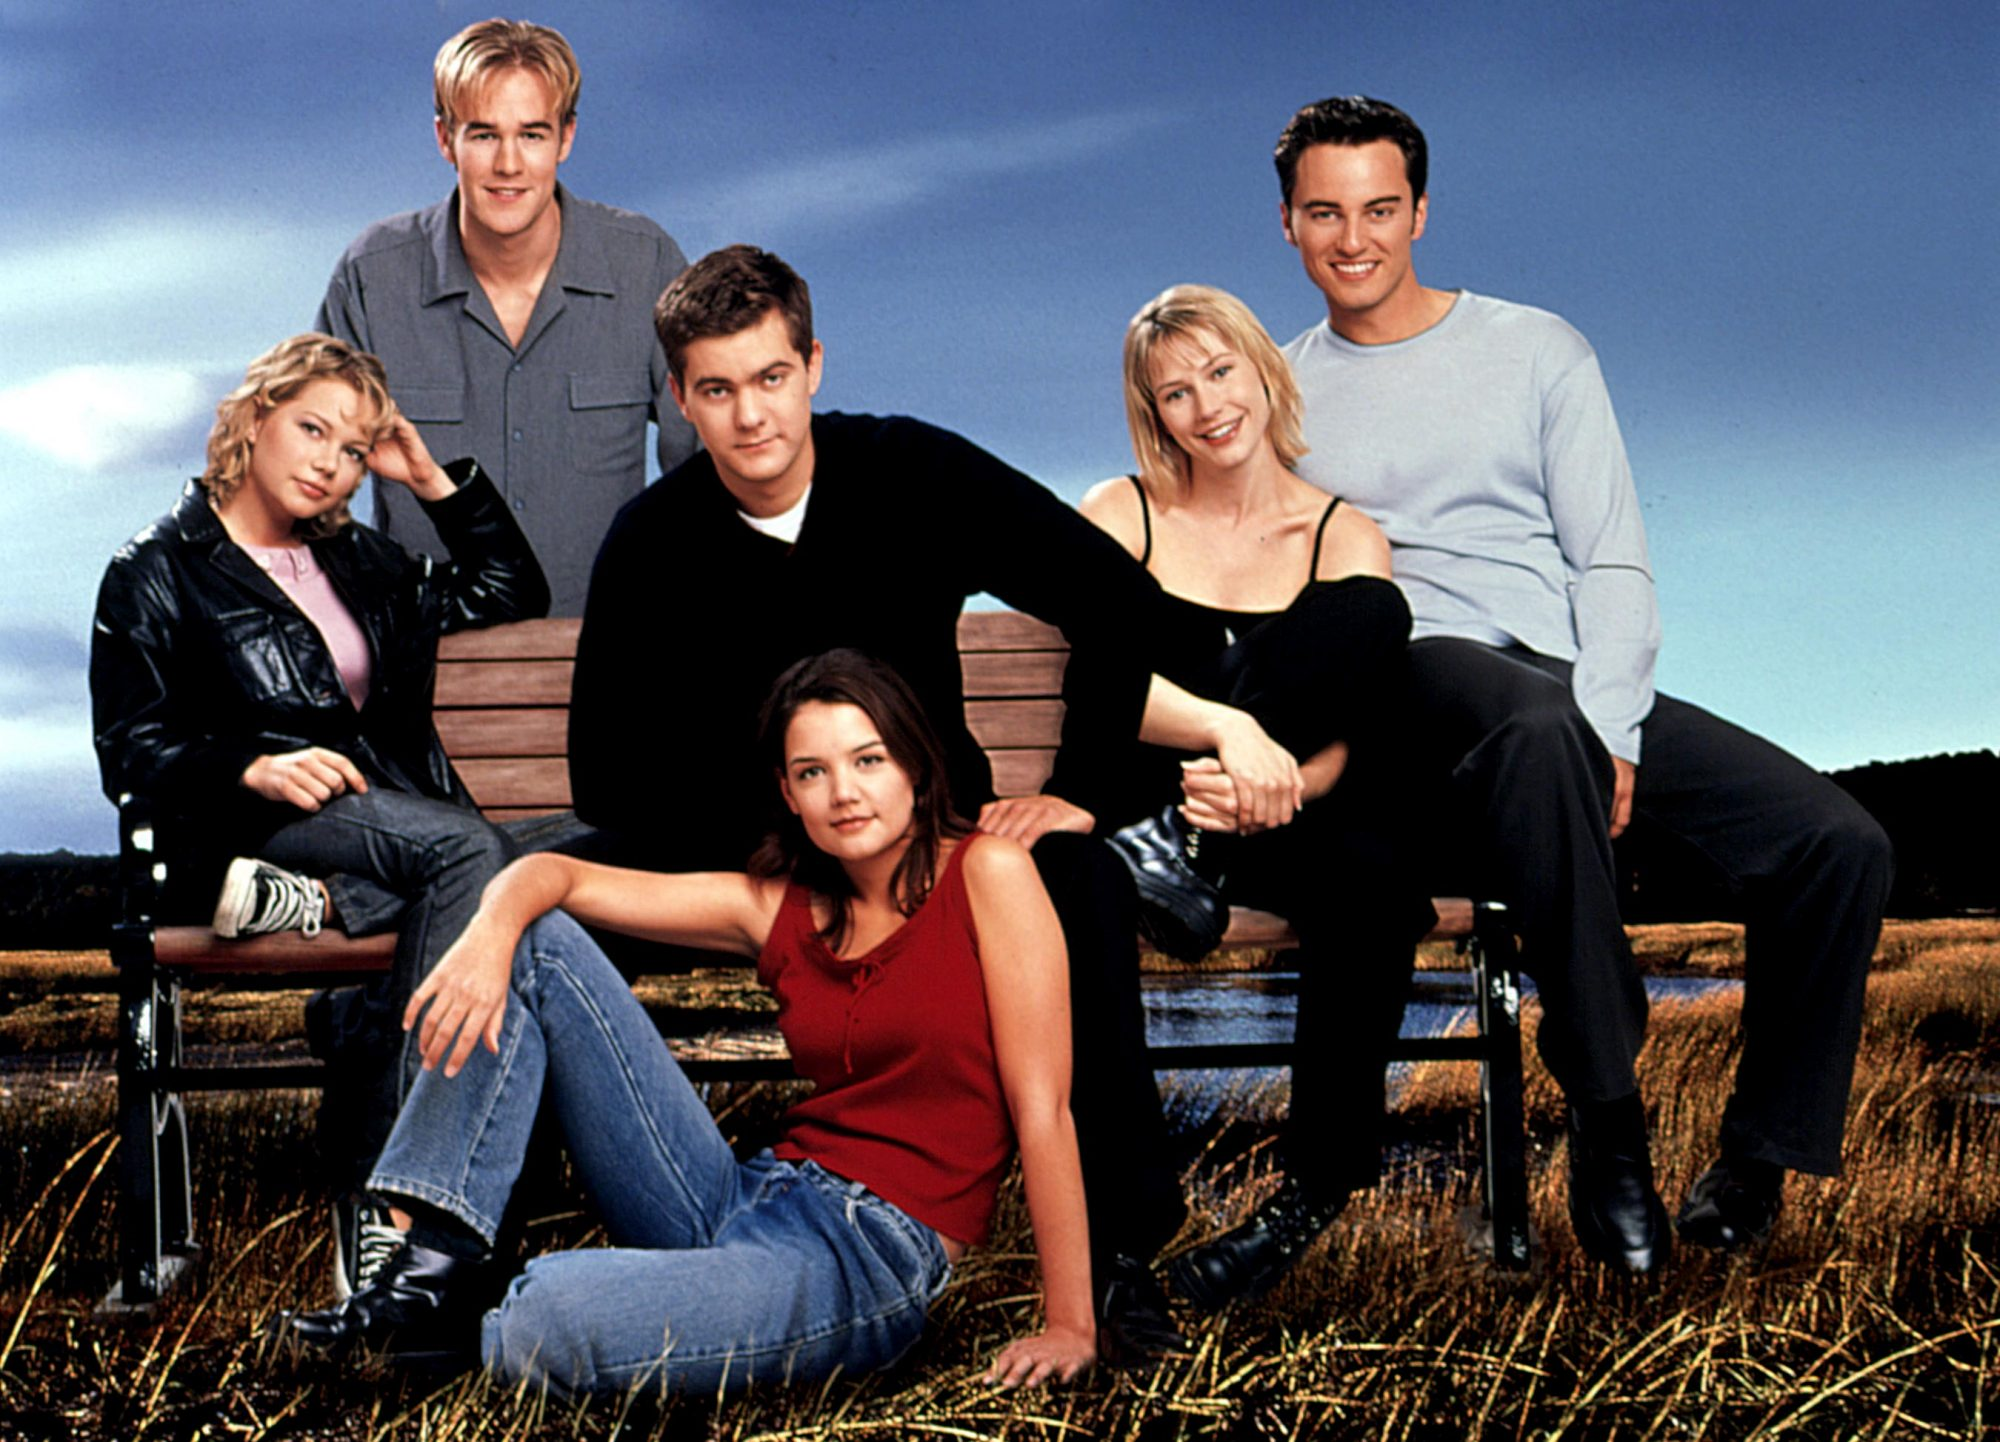 DAWSON'S CREEK, 1998-present, Michelle Williams, James Van Der Beek, Joshua Jackson, Meredith Monroe